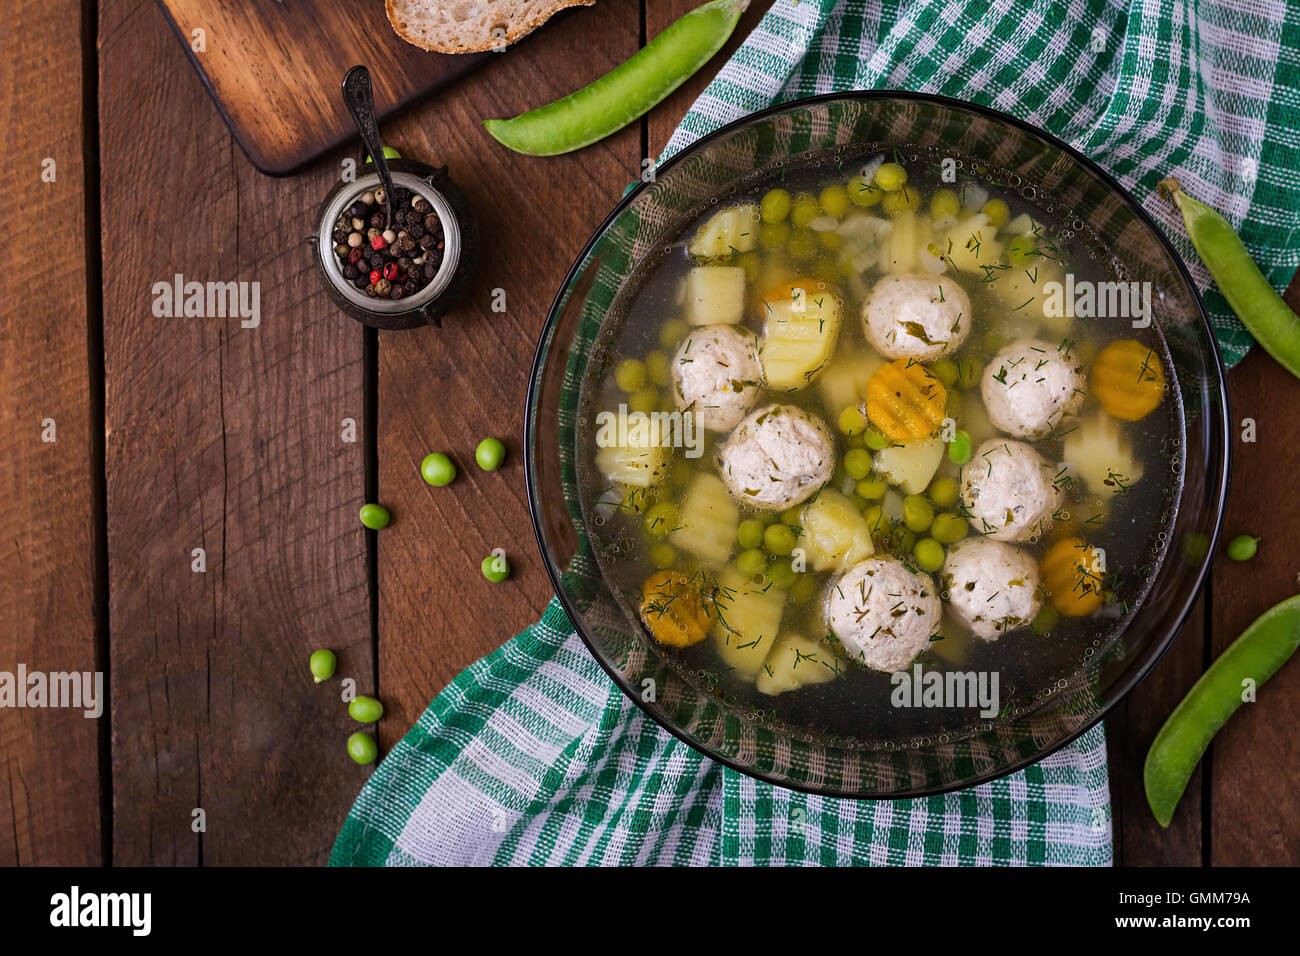 Dietary soup with chicken meatballs and green peas in a glass bowl on a wooden background. Top view - Stock Image